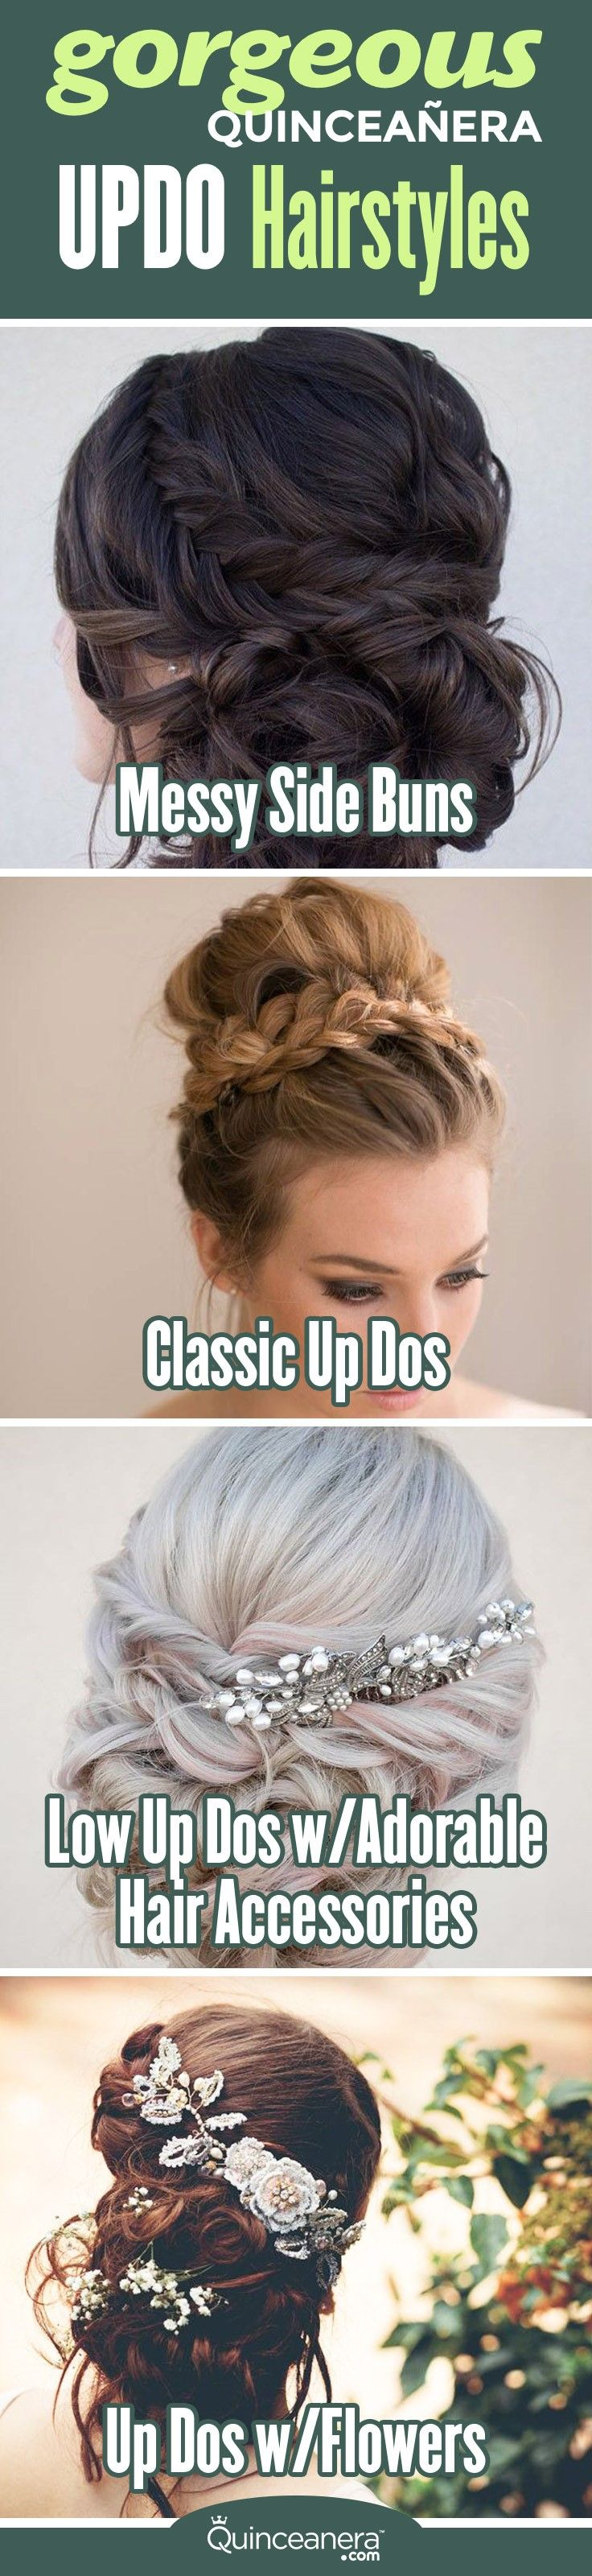 best hairy ideas images on pinterest hairstyle ideas bridal